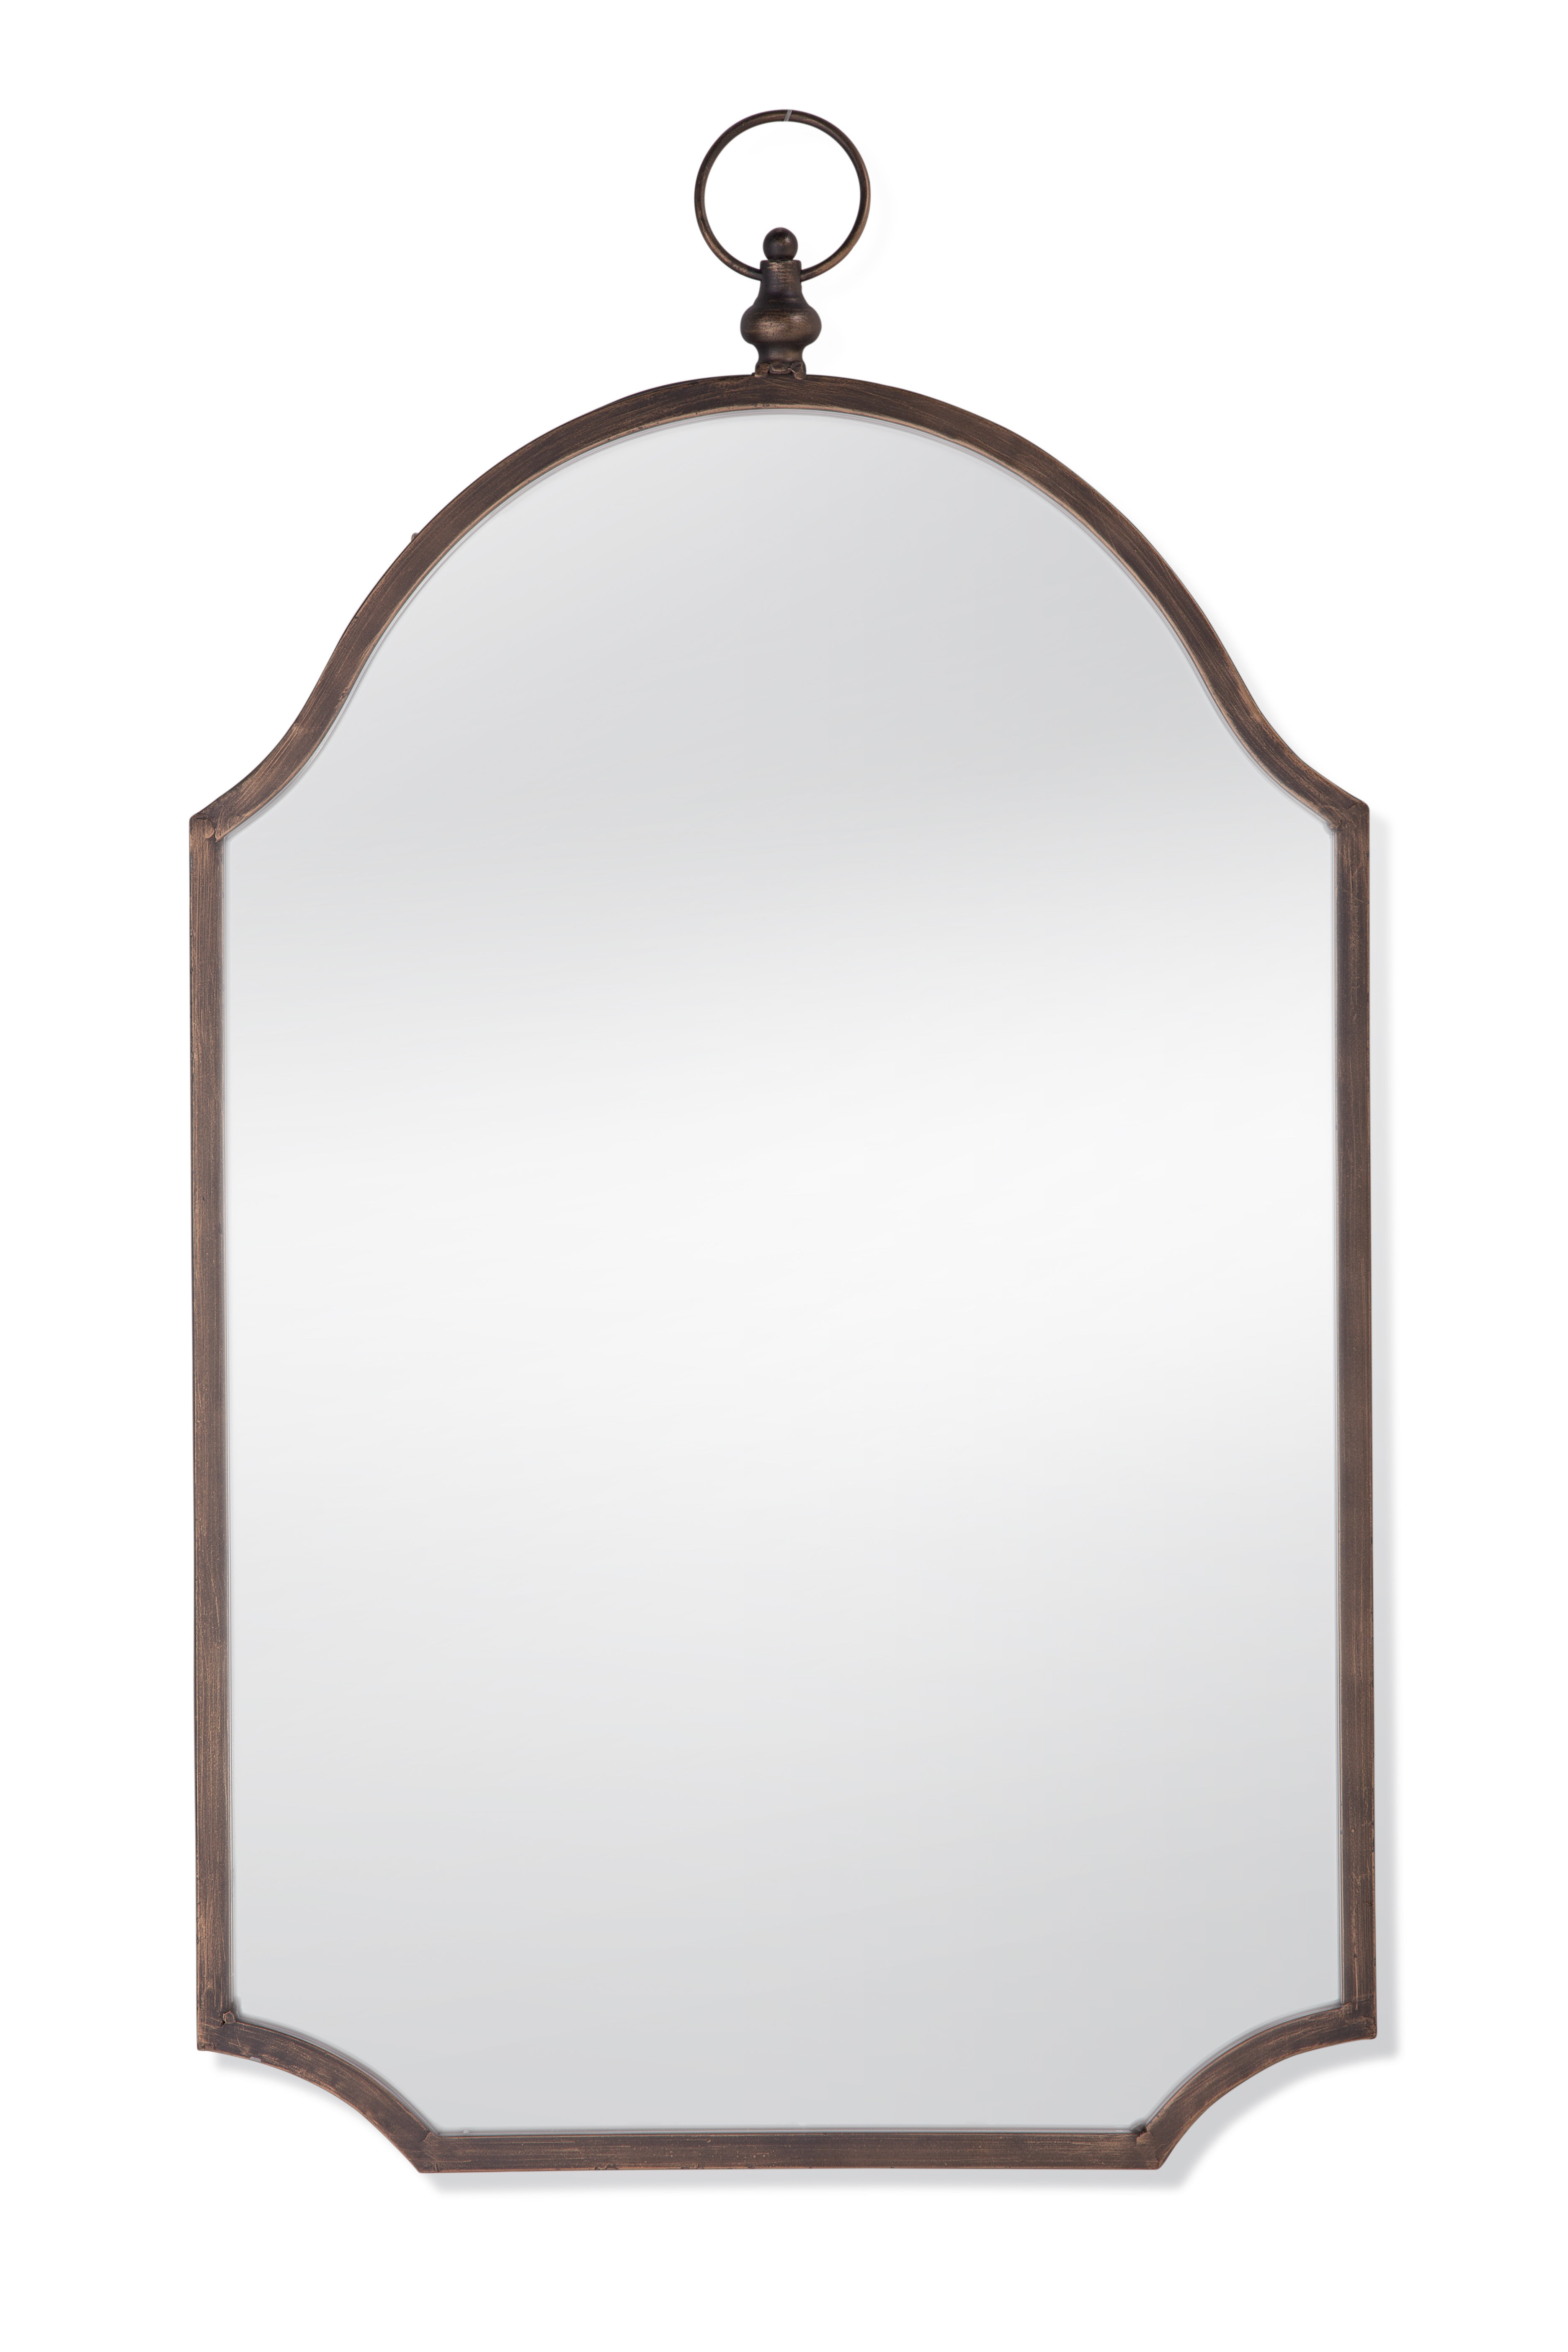 Moseley Accent Mirrors Intended For Well Known Inglaterra Accent Mirror (View 7 of 20)